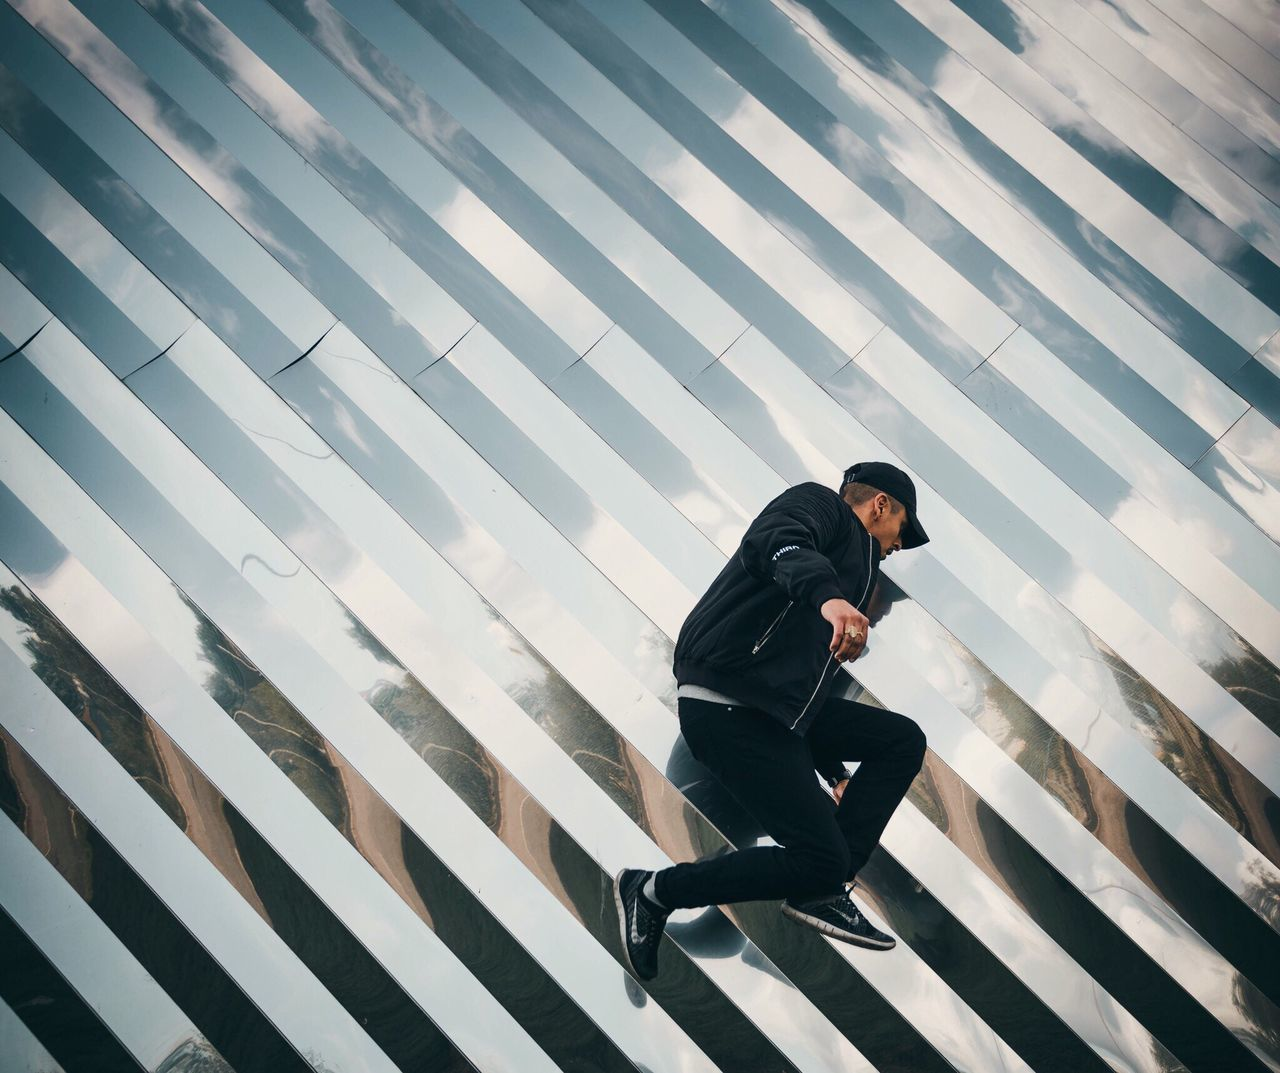 high angle view vertical one person minimalism minimal City silver casual clothing Portraits Lines Streetwear lifestyles Lifestyle clothing Leading Lines model Composition EyeEm Best Edits outdoors EyeEm Best Shots Architecture portrait mix yourself a good time The Week on EyeEm EyeEmNewHere